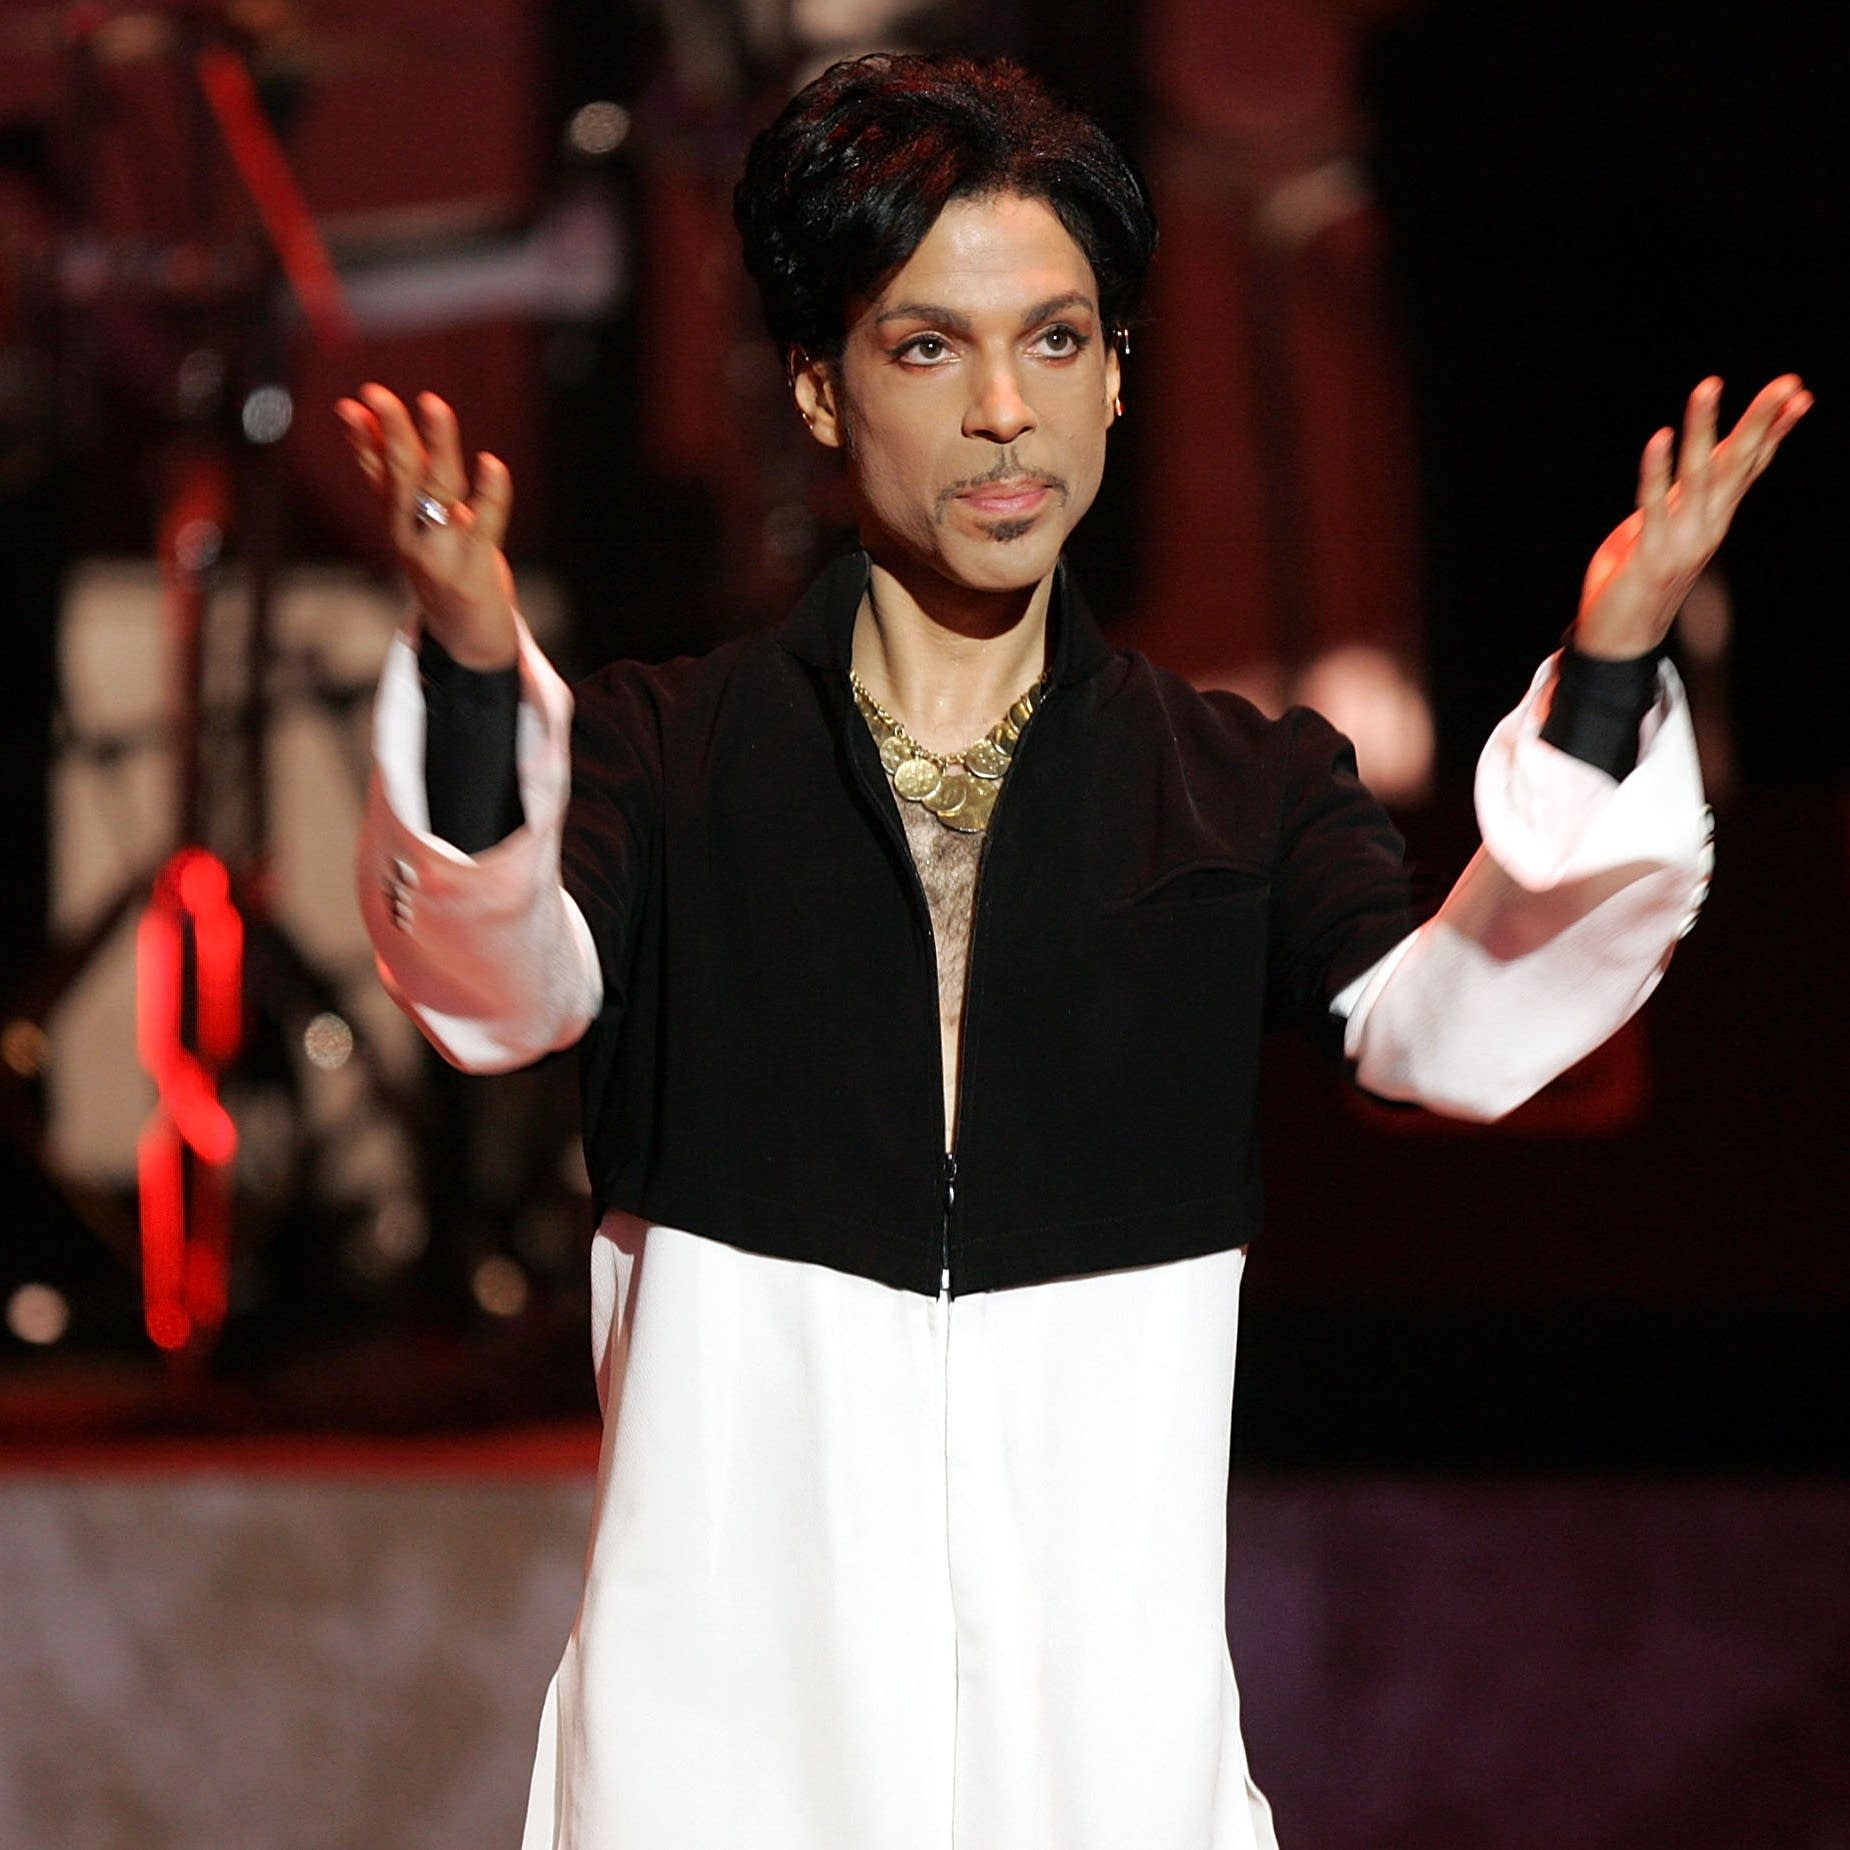 Prince at the NAACP Image Awards in 2005.